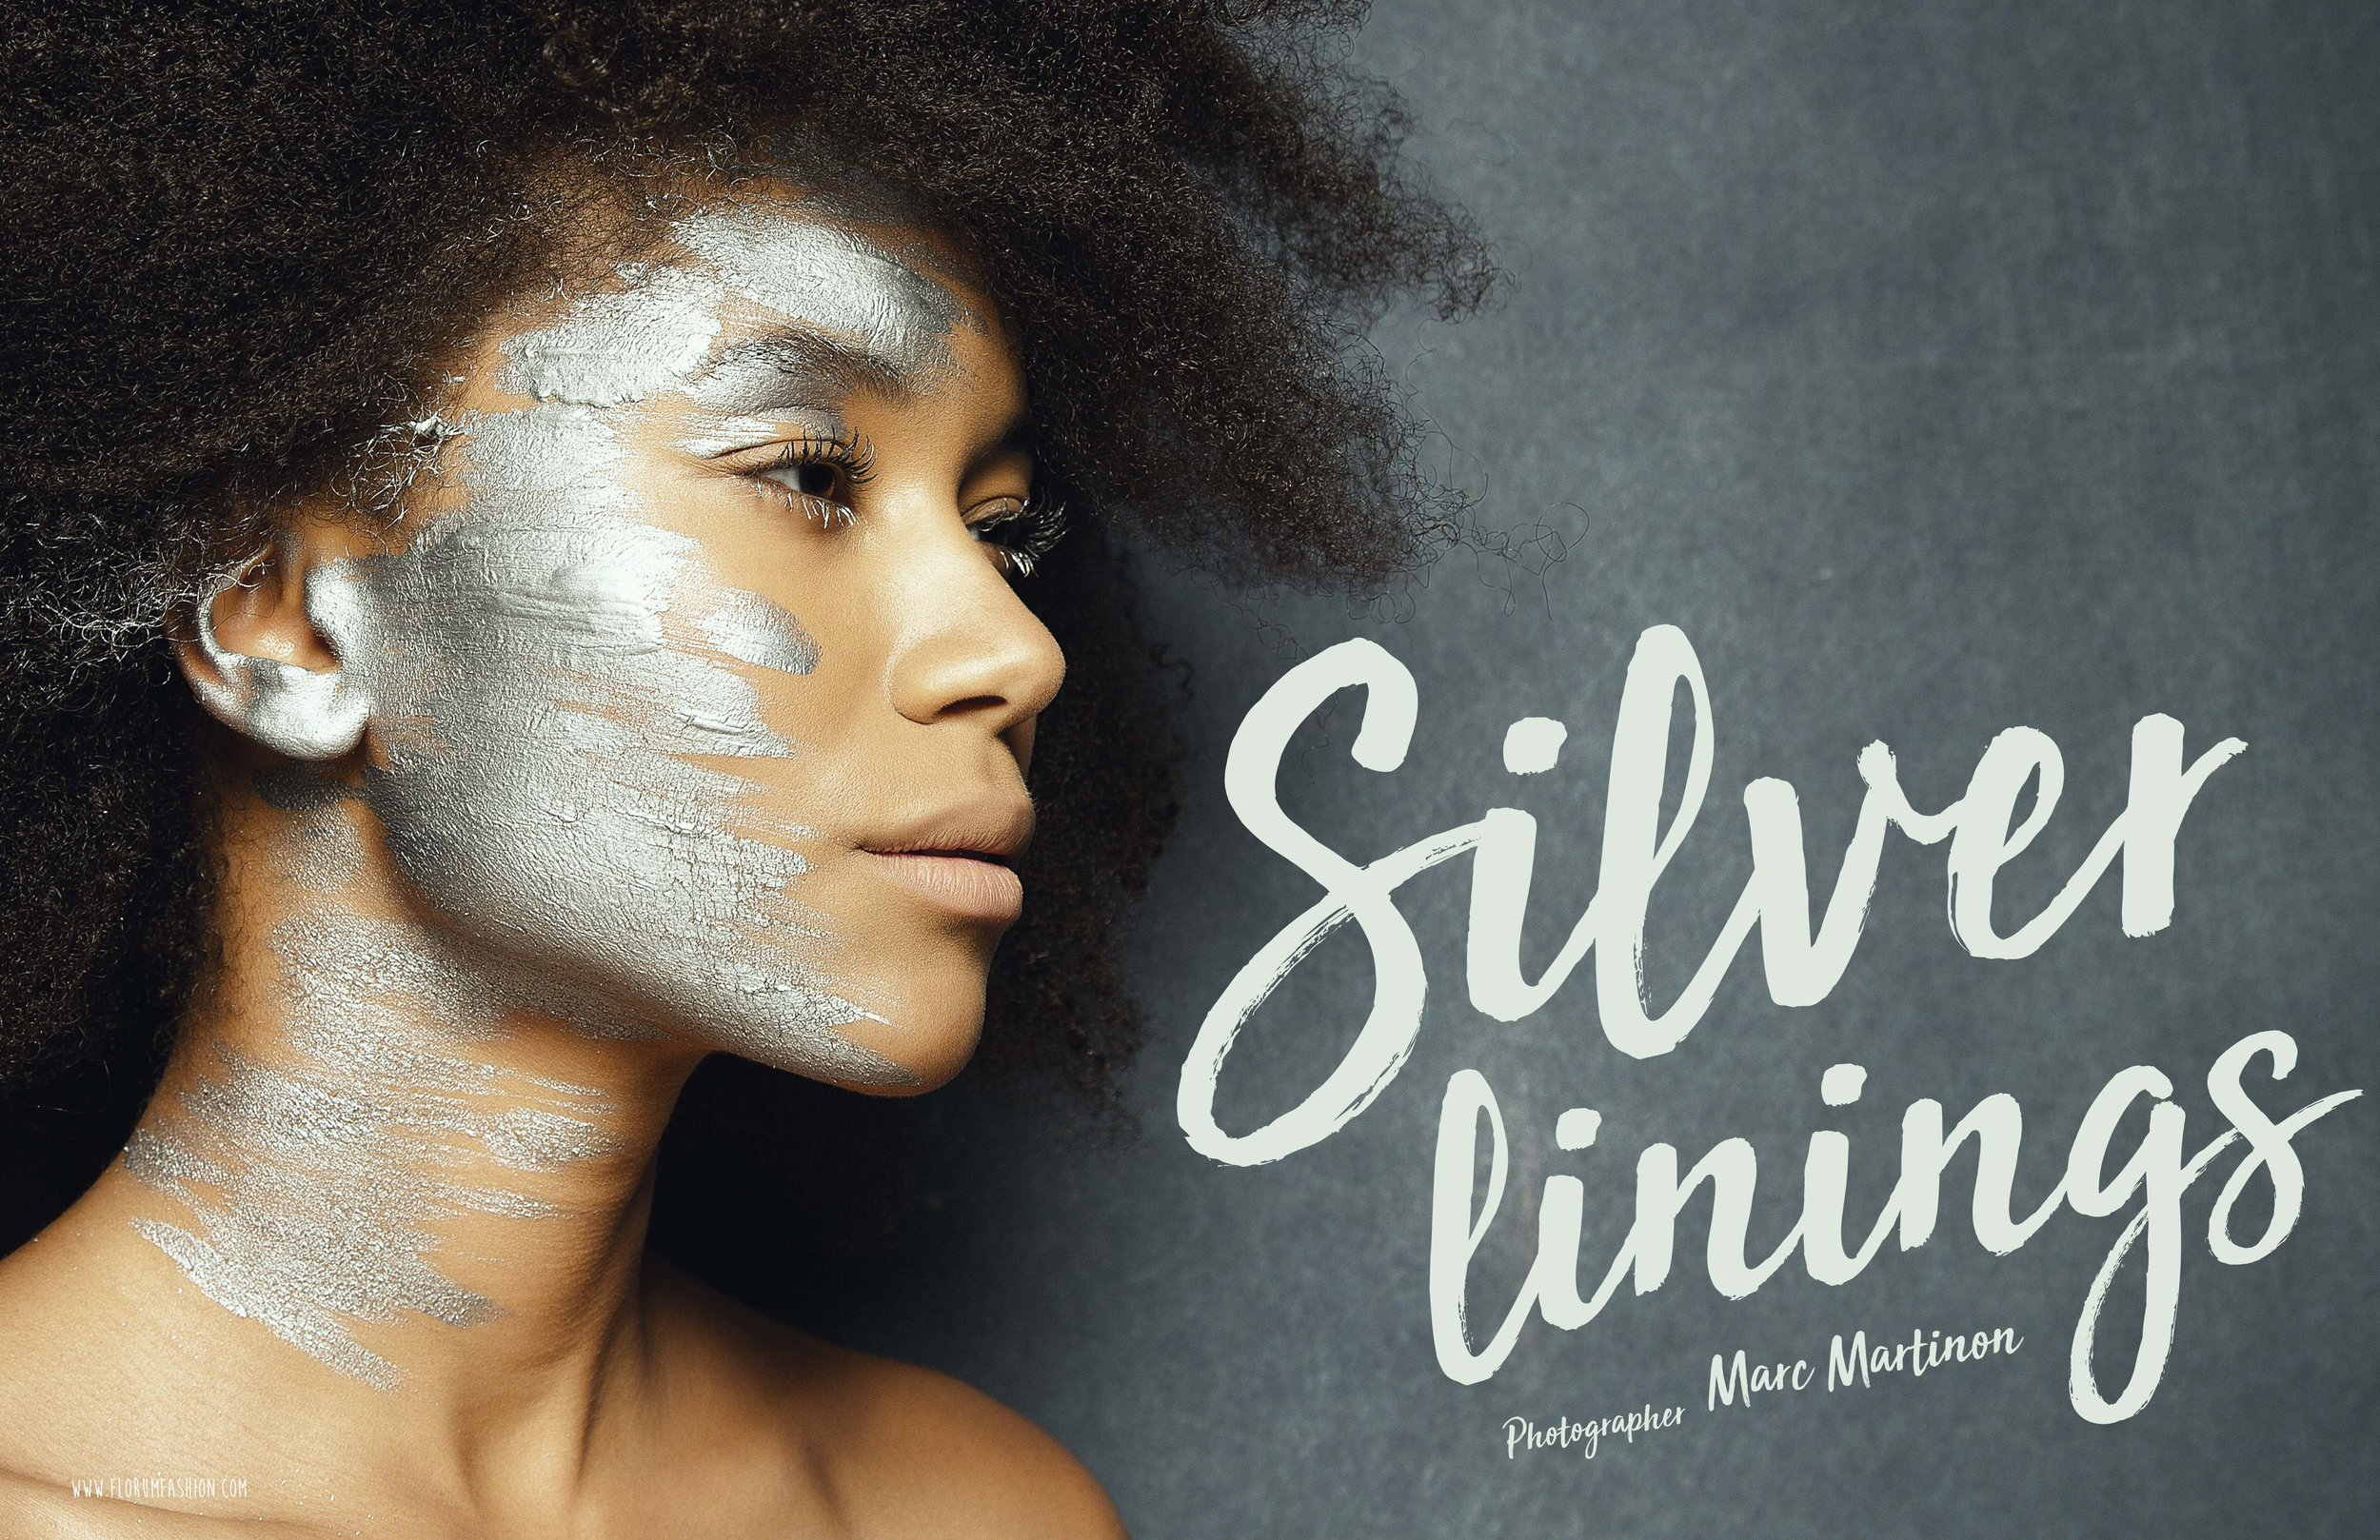 Silver lining - florum fashion submission magazine New Years editorial -Marc martinon - LAURE B of Enjoy Models - makeup artist Julie Mandin - Green - eco webitorial silver beauty editorial